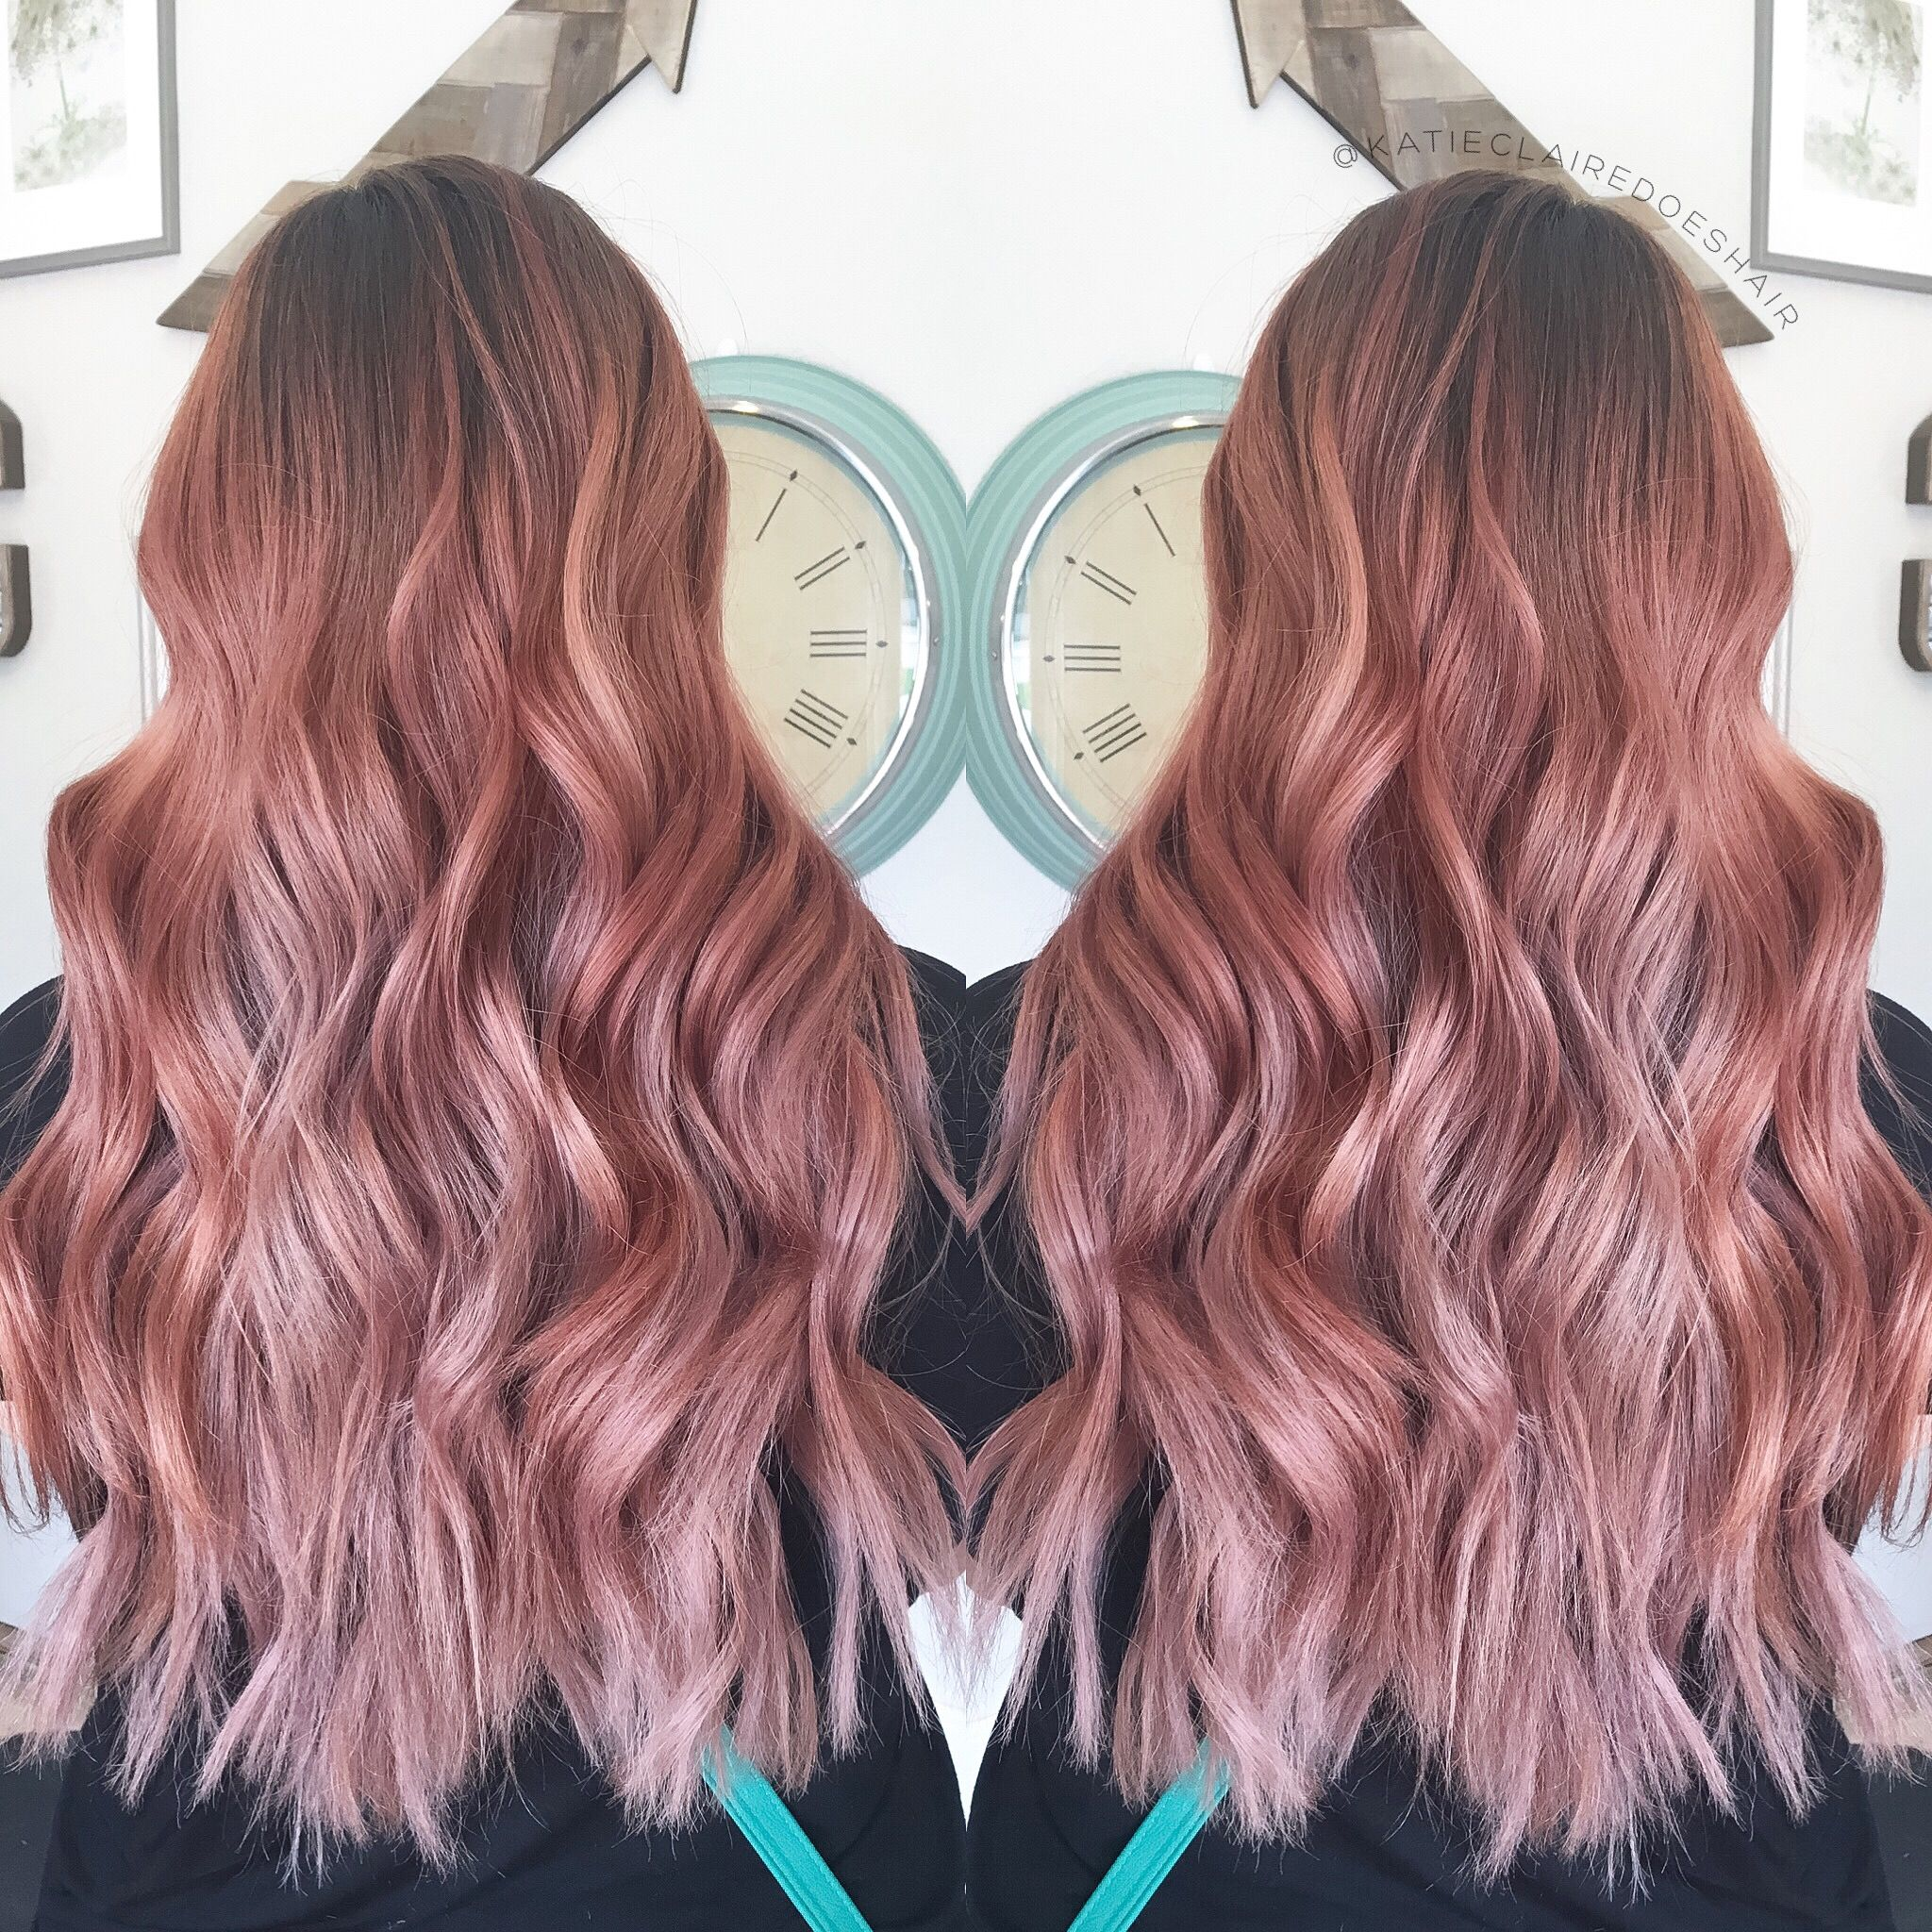 Dusty Rose hair // balayage // rose gold // rosey hair // pink hair // beach waves // long hair